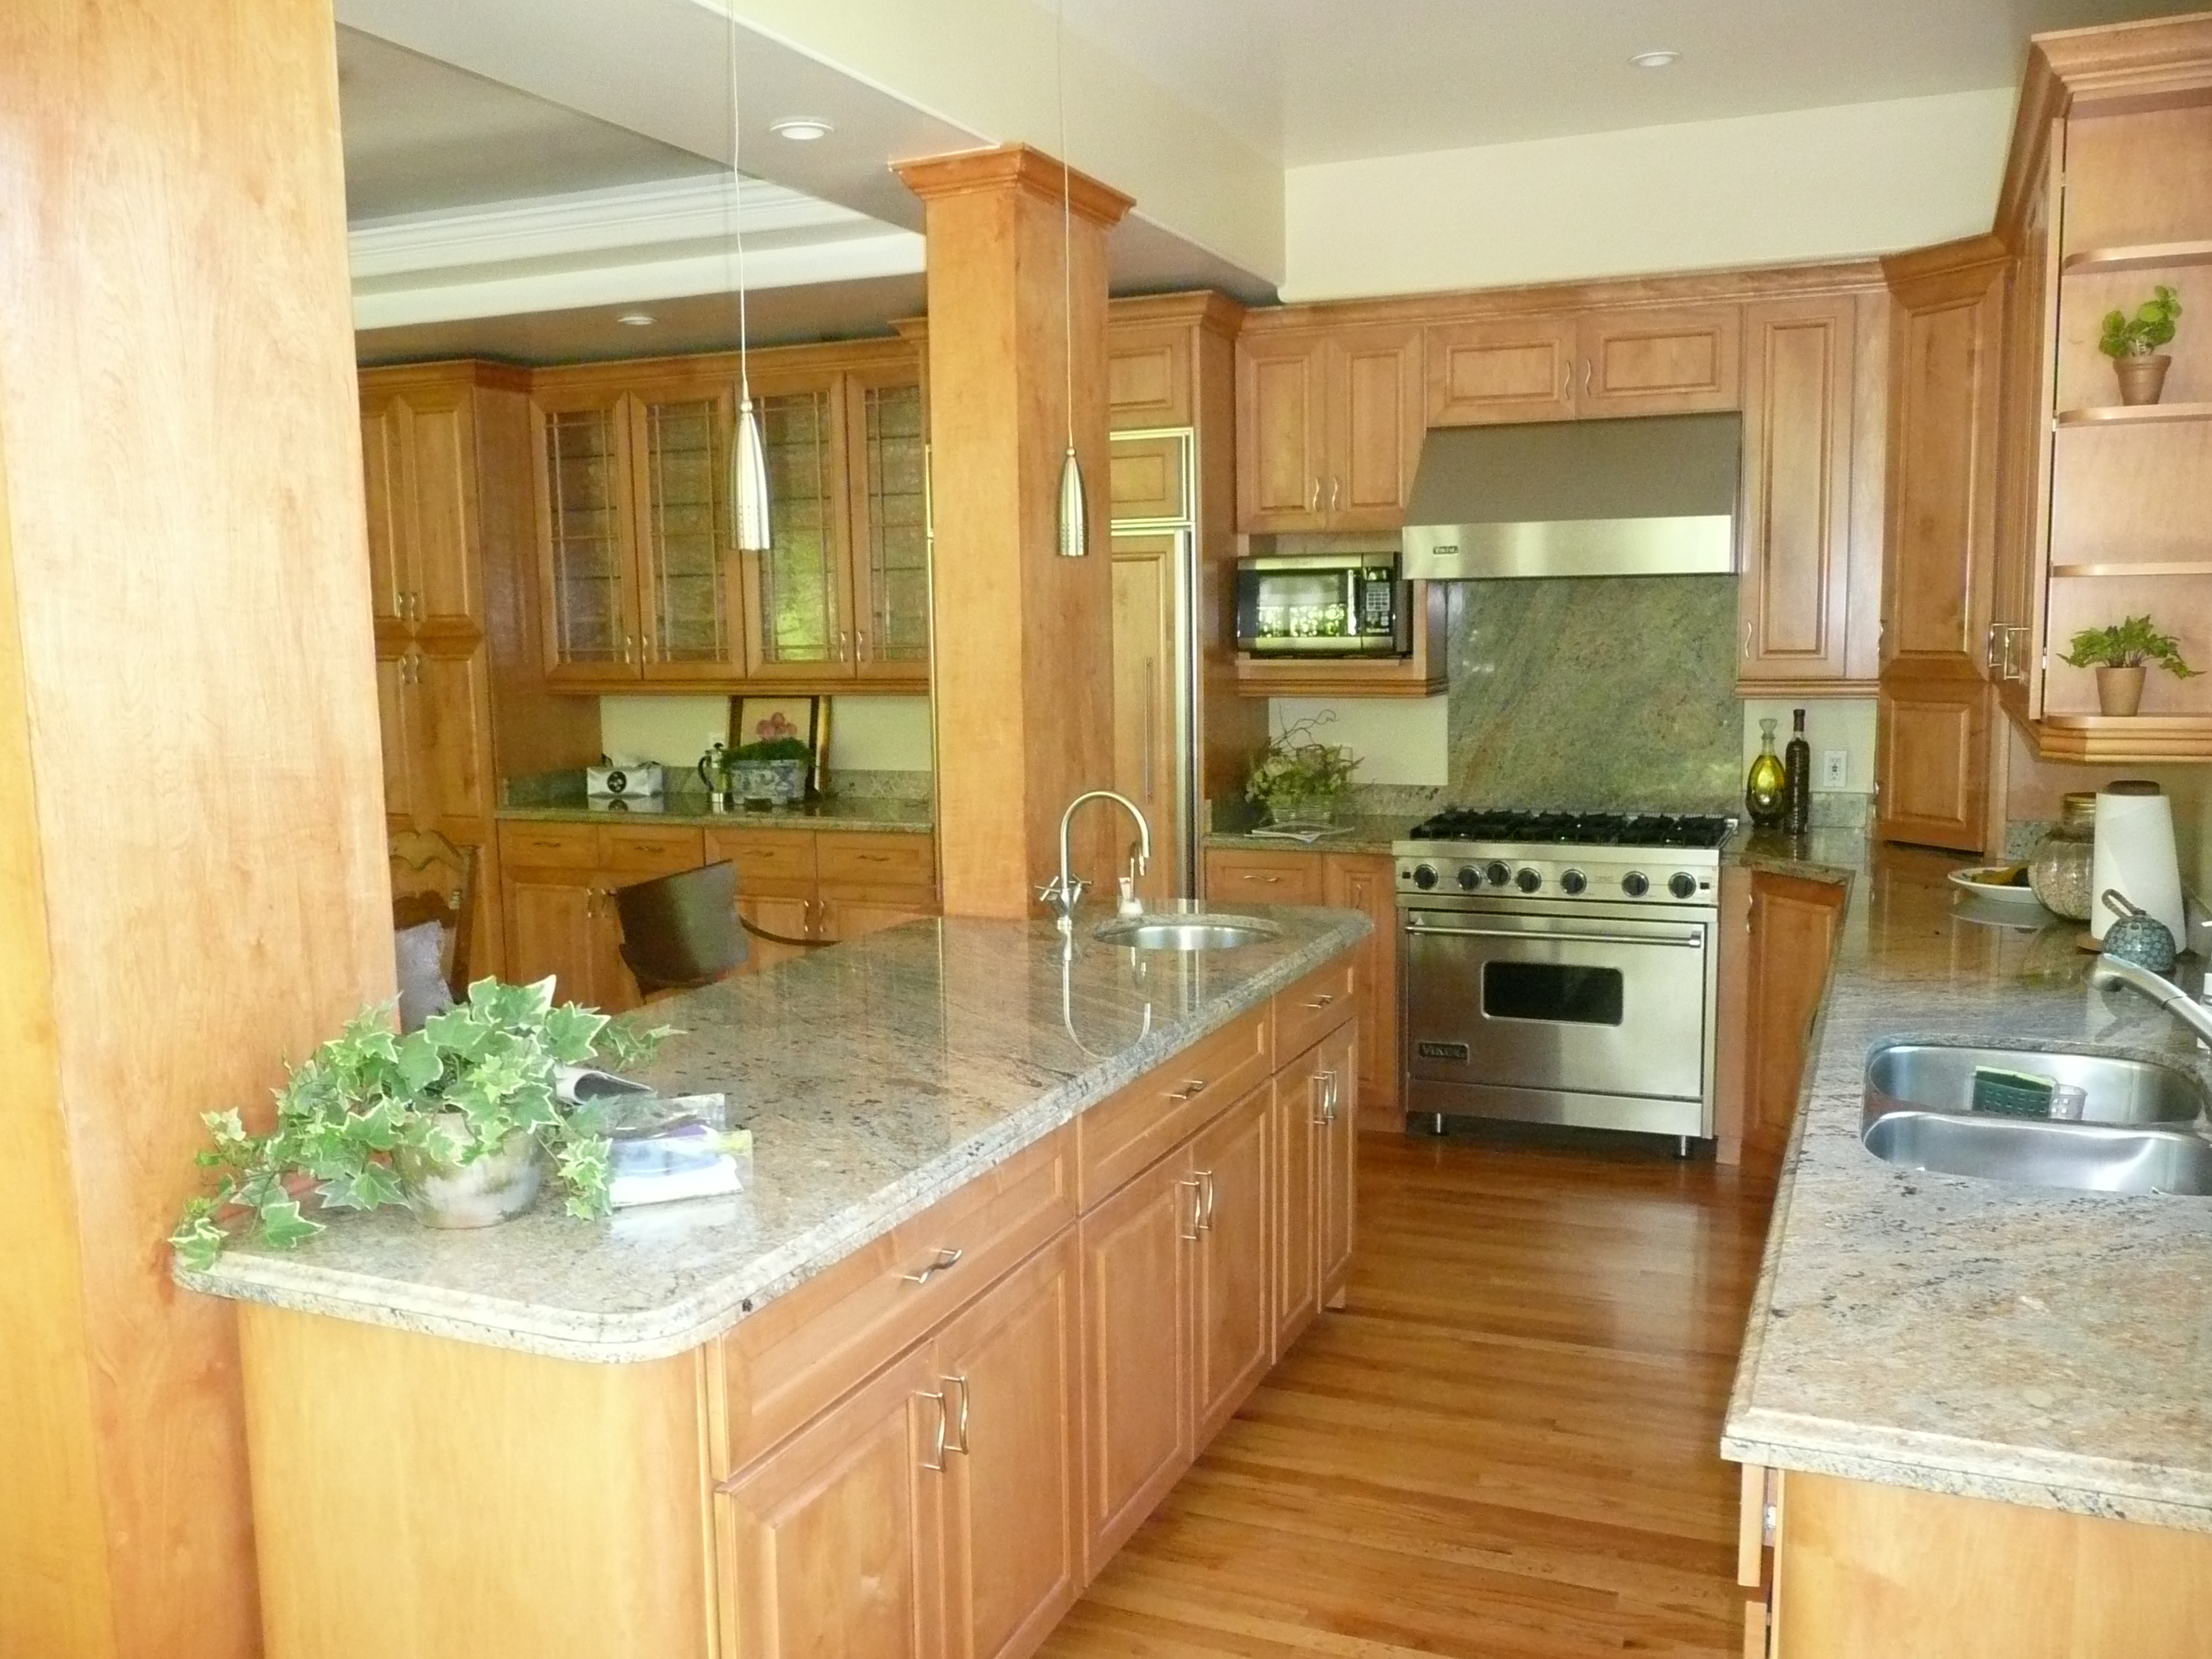 Poorly Designed Kitchen From Feng Shui Kitchen Design   Straight Line And  Back To Doorway.